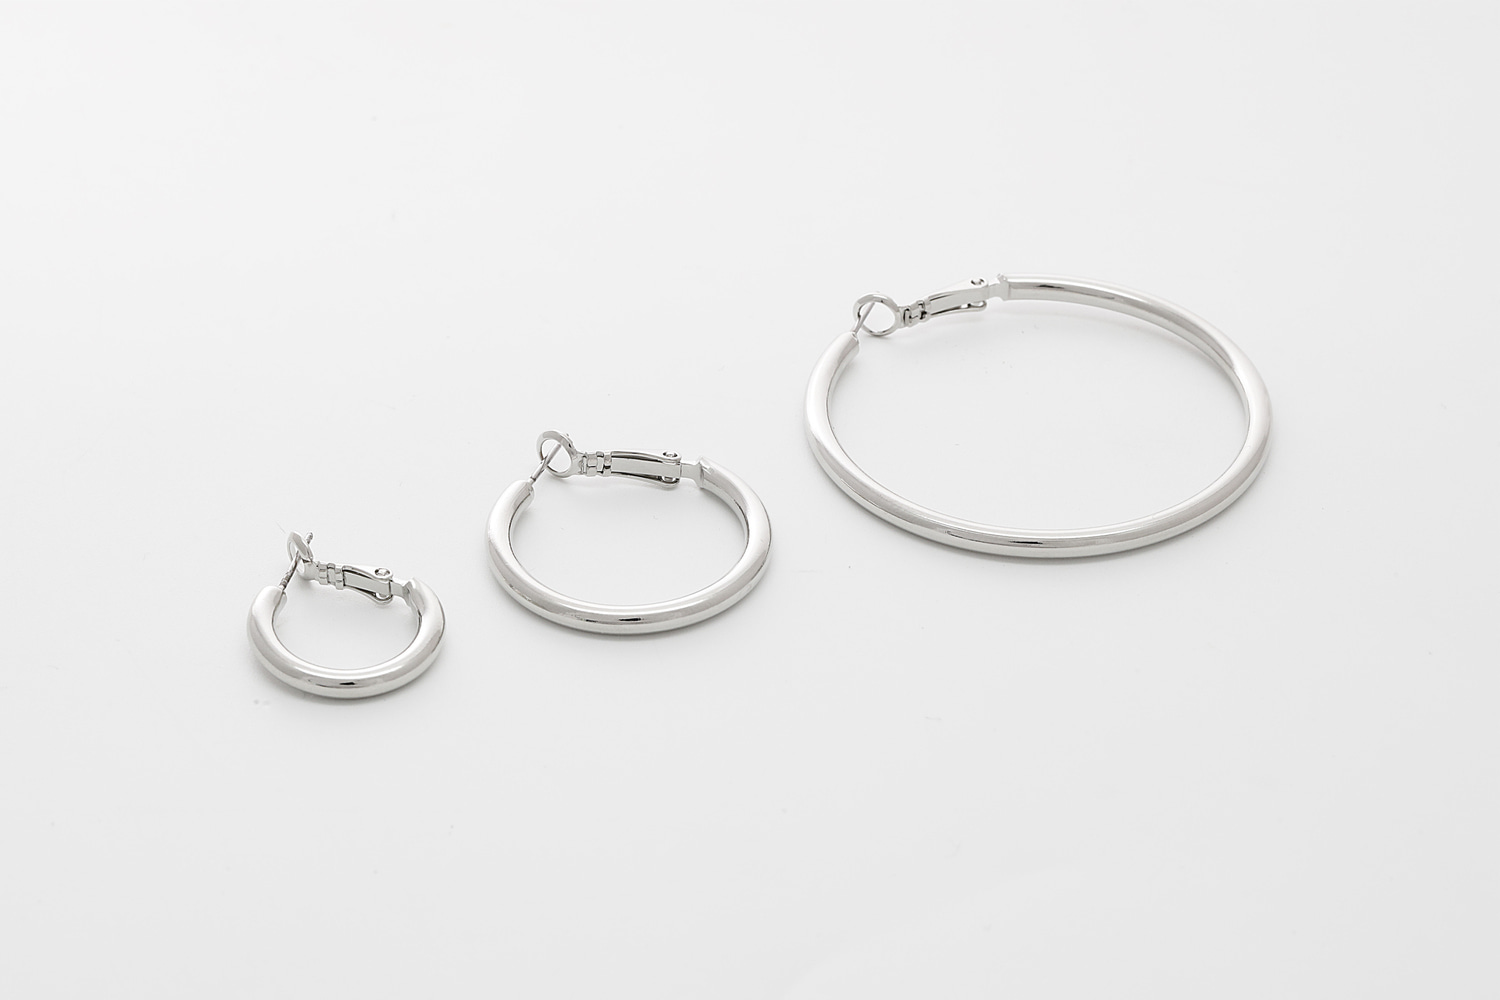 [T65-VC5] Bold round hoop earrings, 20mm, 30mm, 50mm, Wedding jewelry, Wedding earrings, brass, Nickel free, 2 pcs per style (T65-G8R, T65-G9R, T65-G10R)